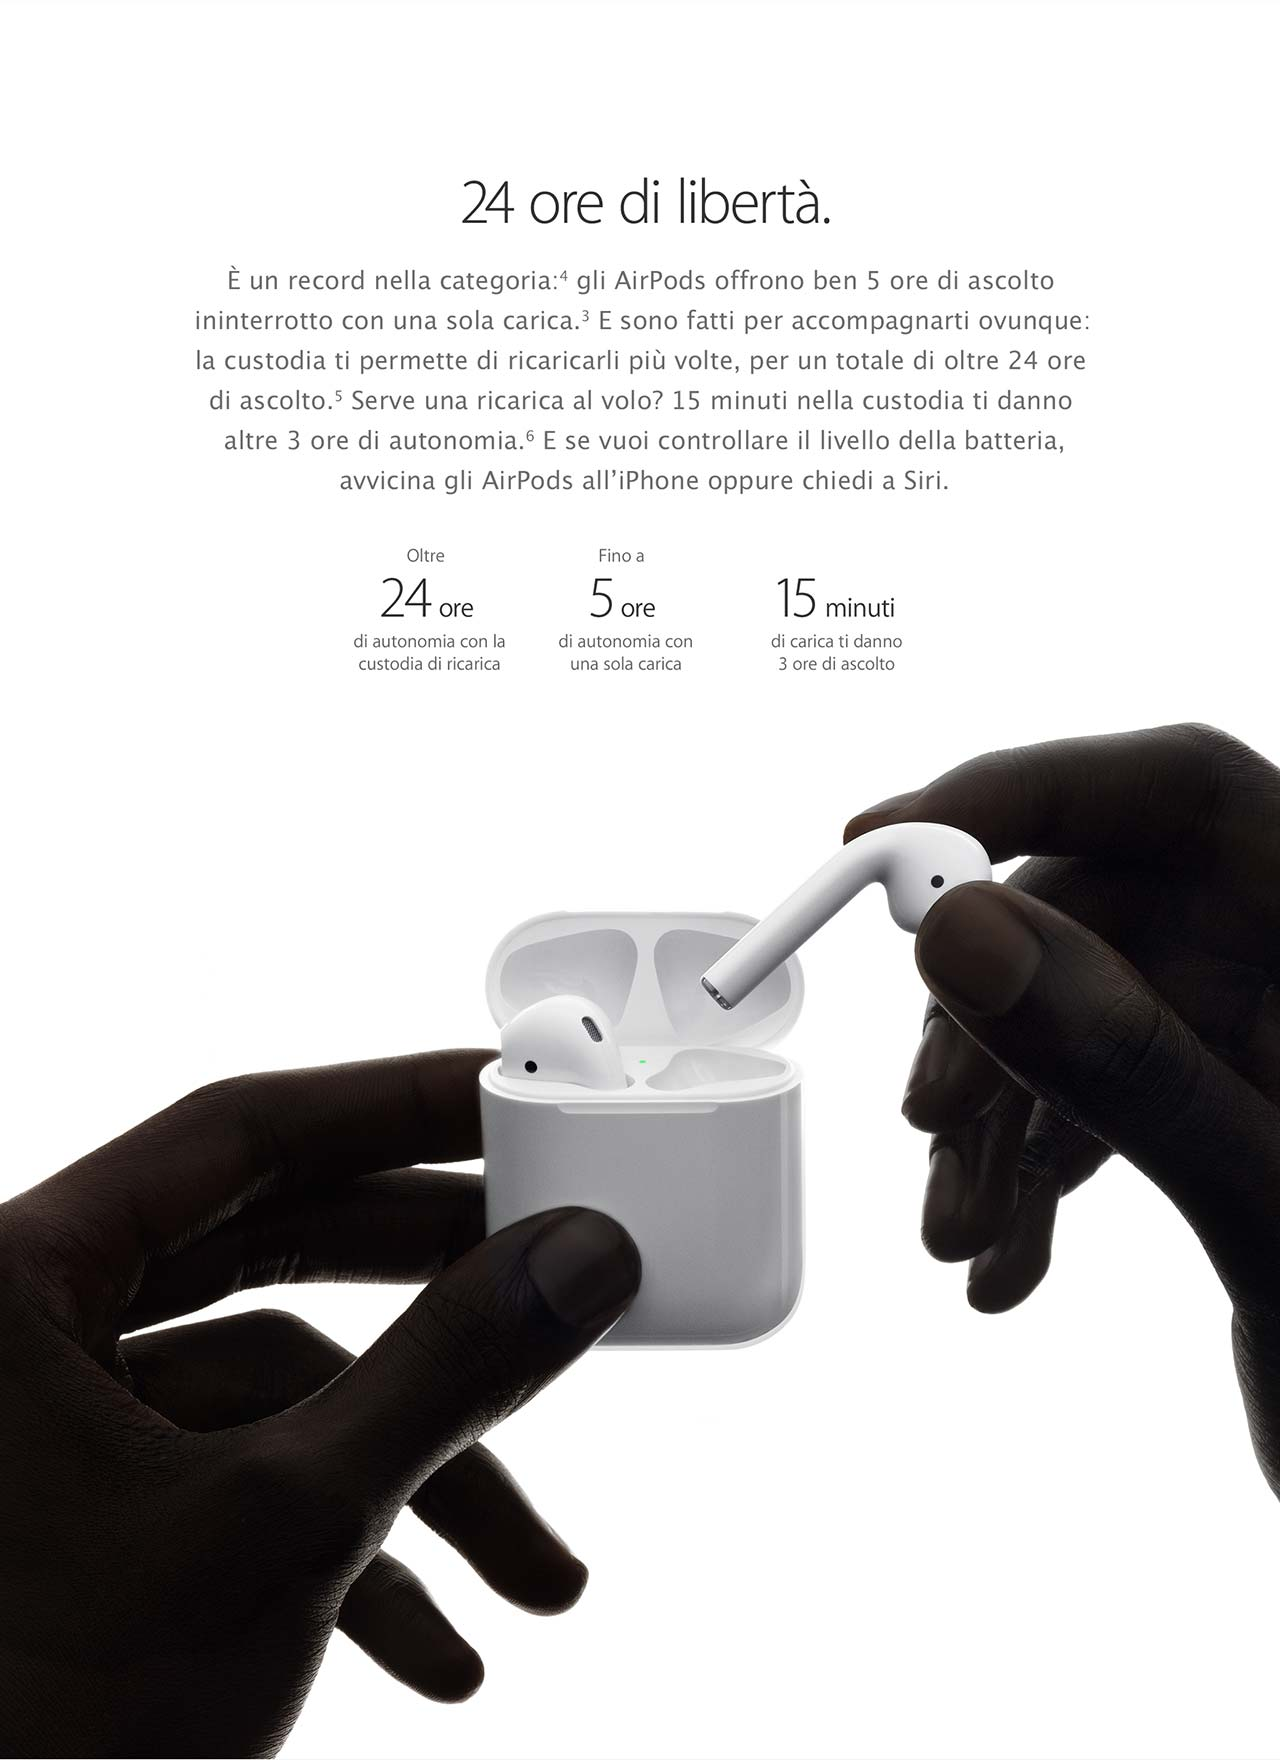 AirPods con la custodia